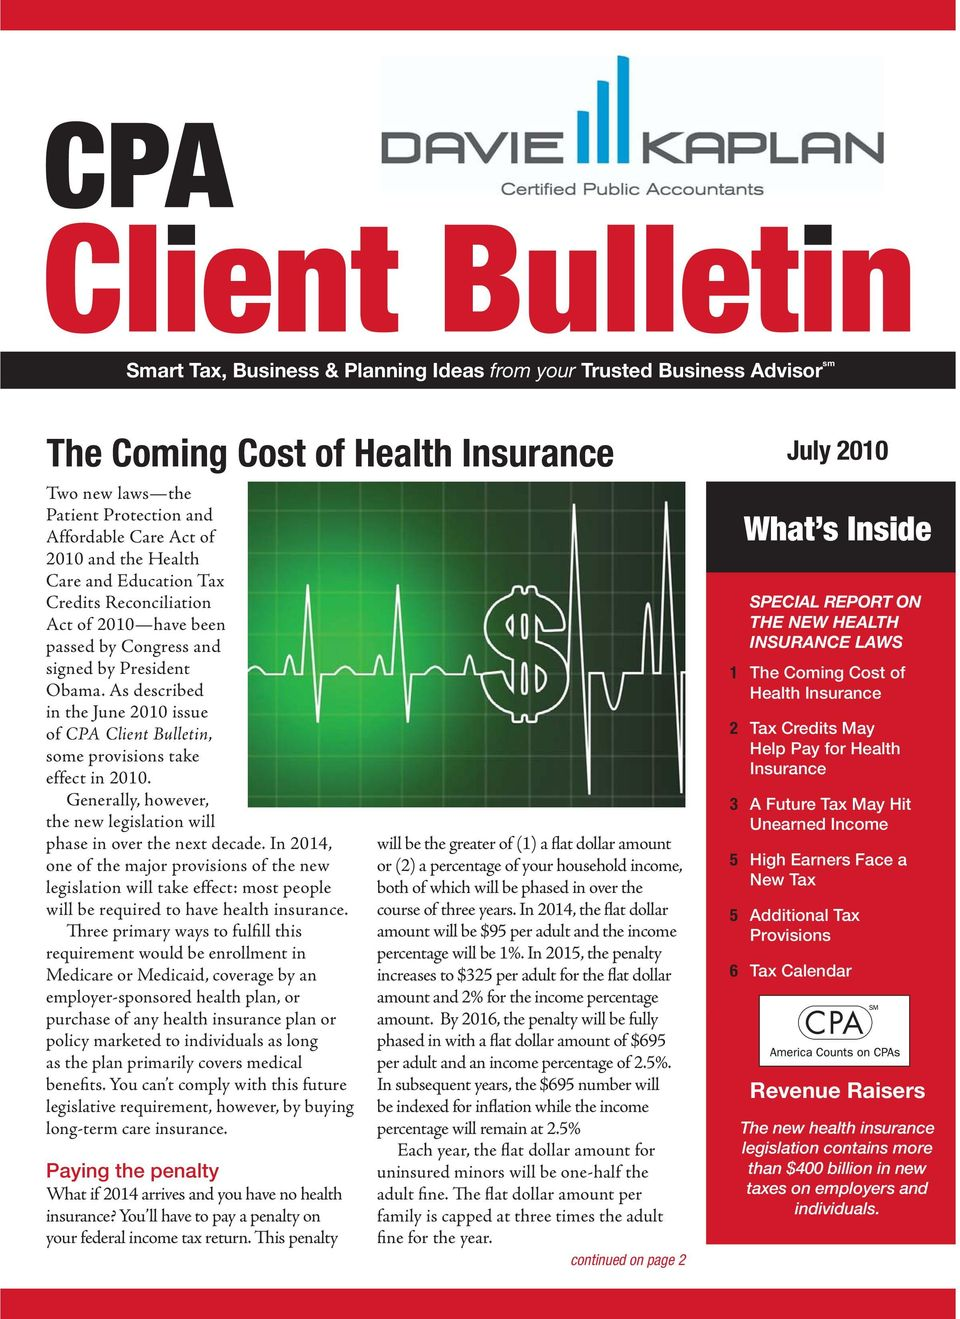 As described in the June 2010 issue of CPA Client Bulletin, some provisions take effect in 2010. Generally, however, the new legislation will phase in over the next decade.